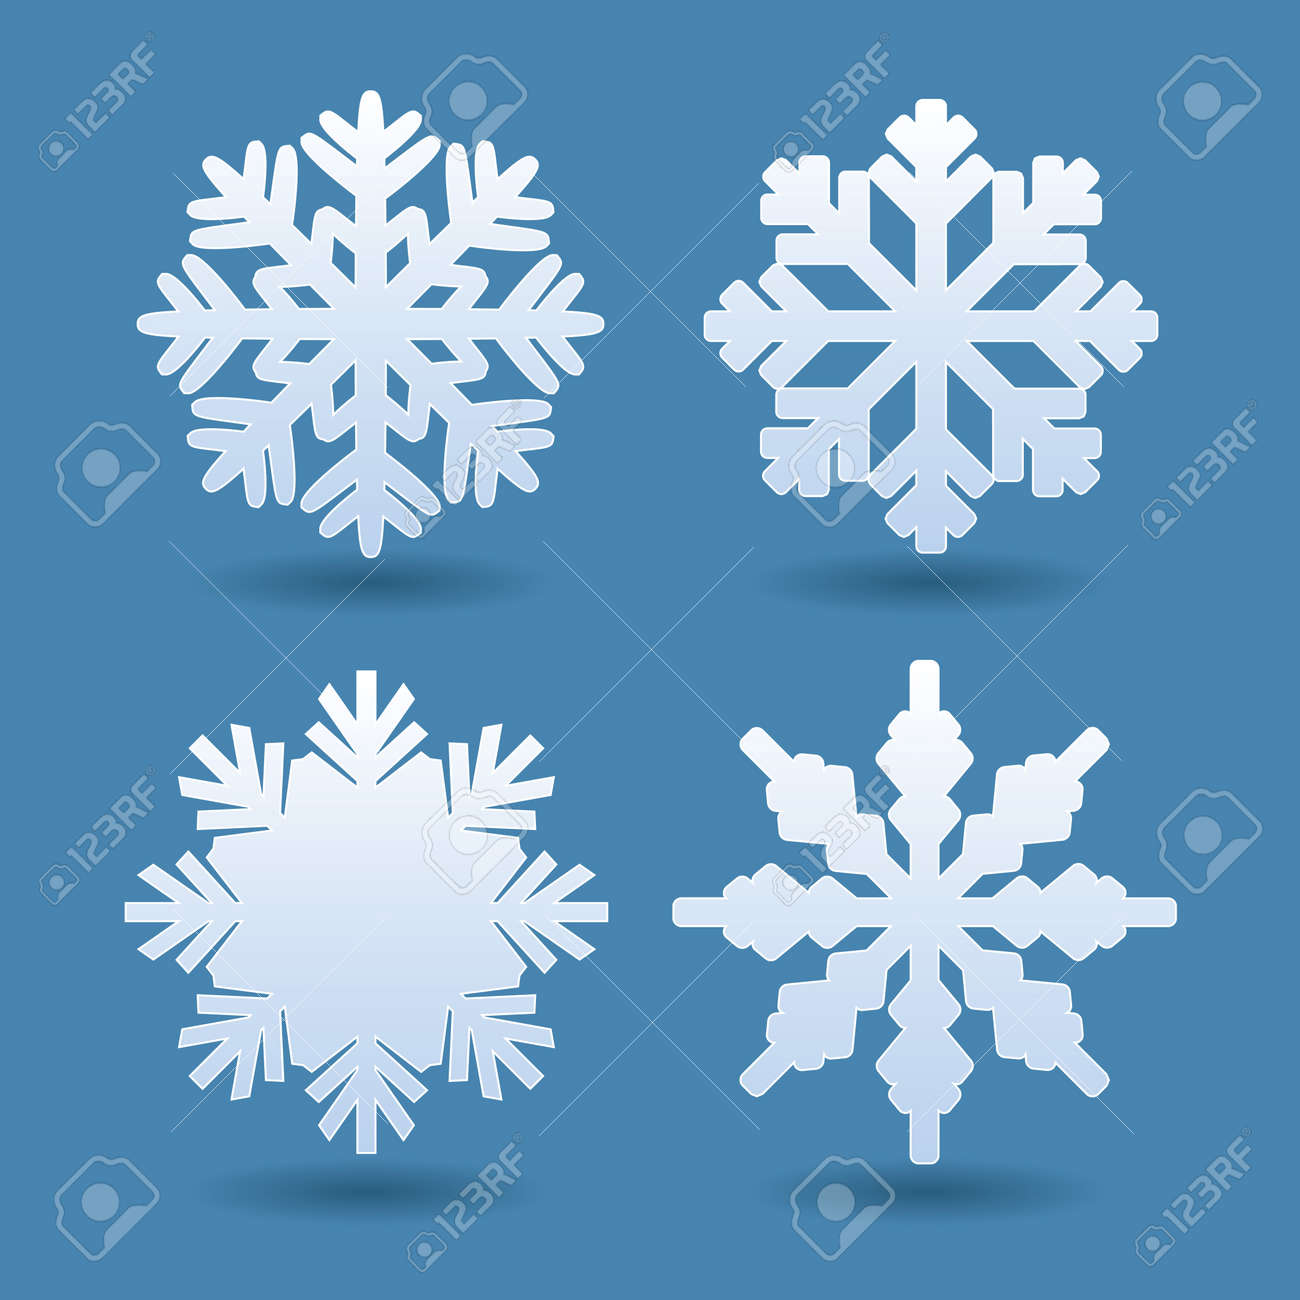 set of white snowflakes vector icons royalty free cliparts rh 123rf com snowflake vector image snowflake vector image